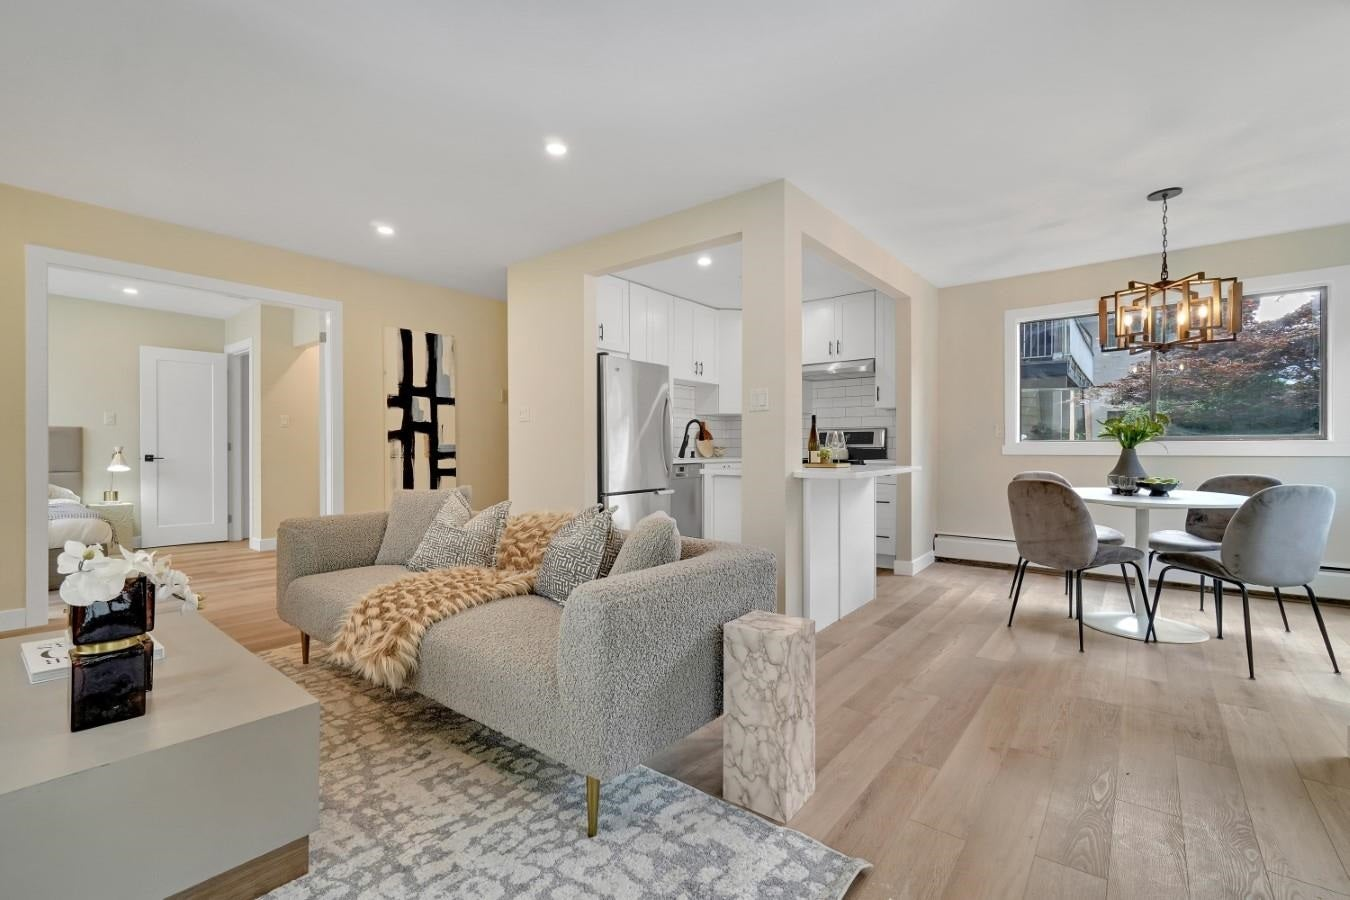 206 330 W 2ND STREET - Lower Lonsdale Apartment/Condo for sale, 2 Bedrooms (R2604160) - #1